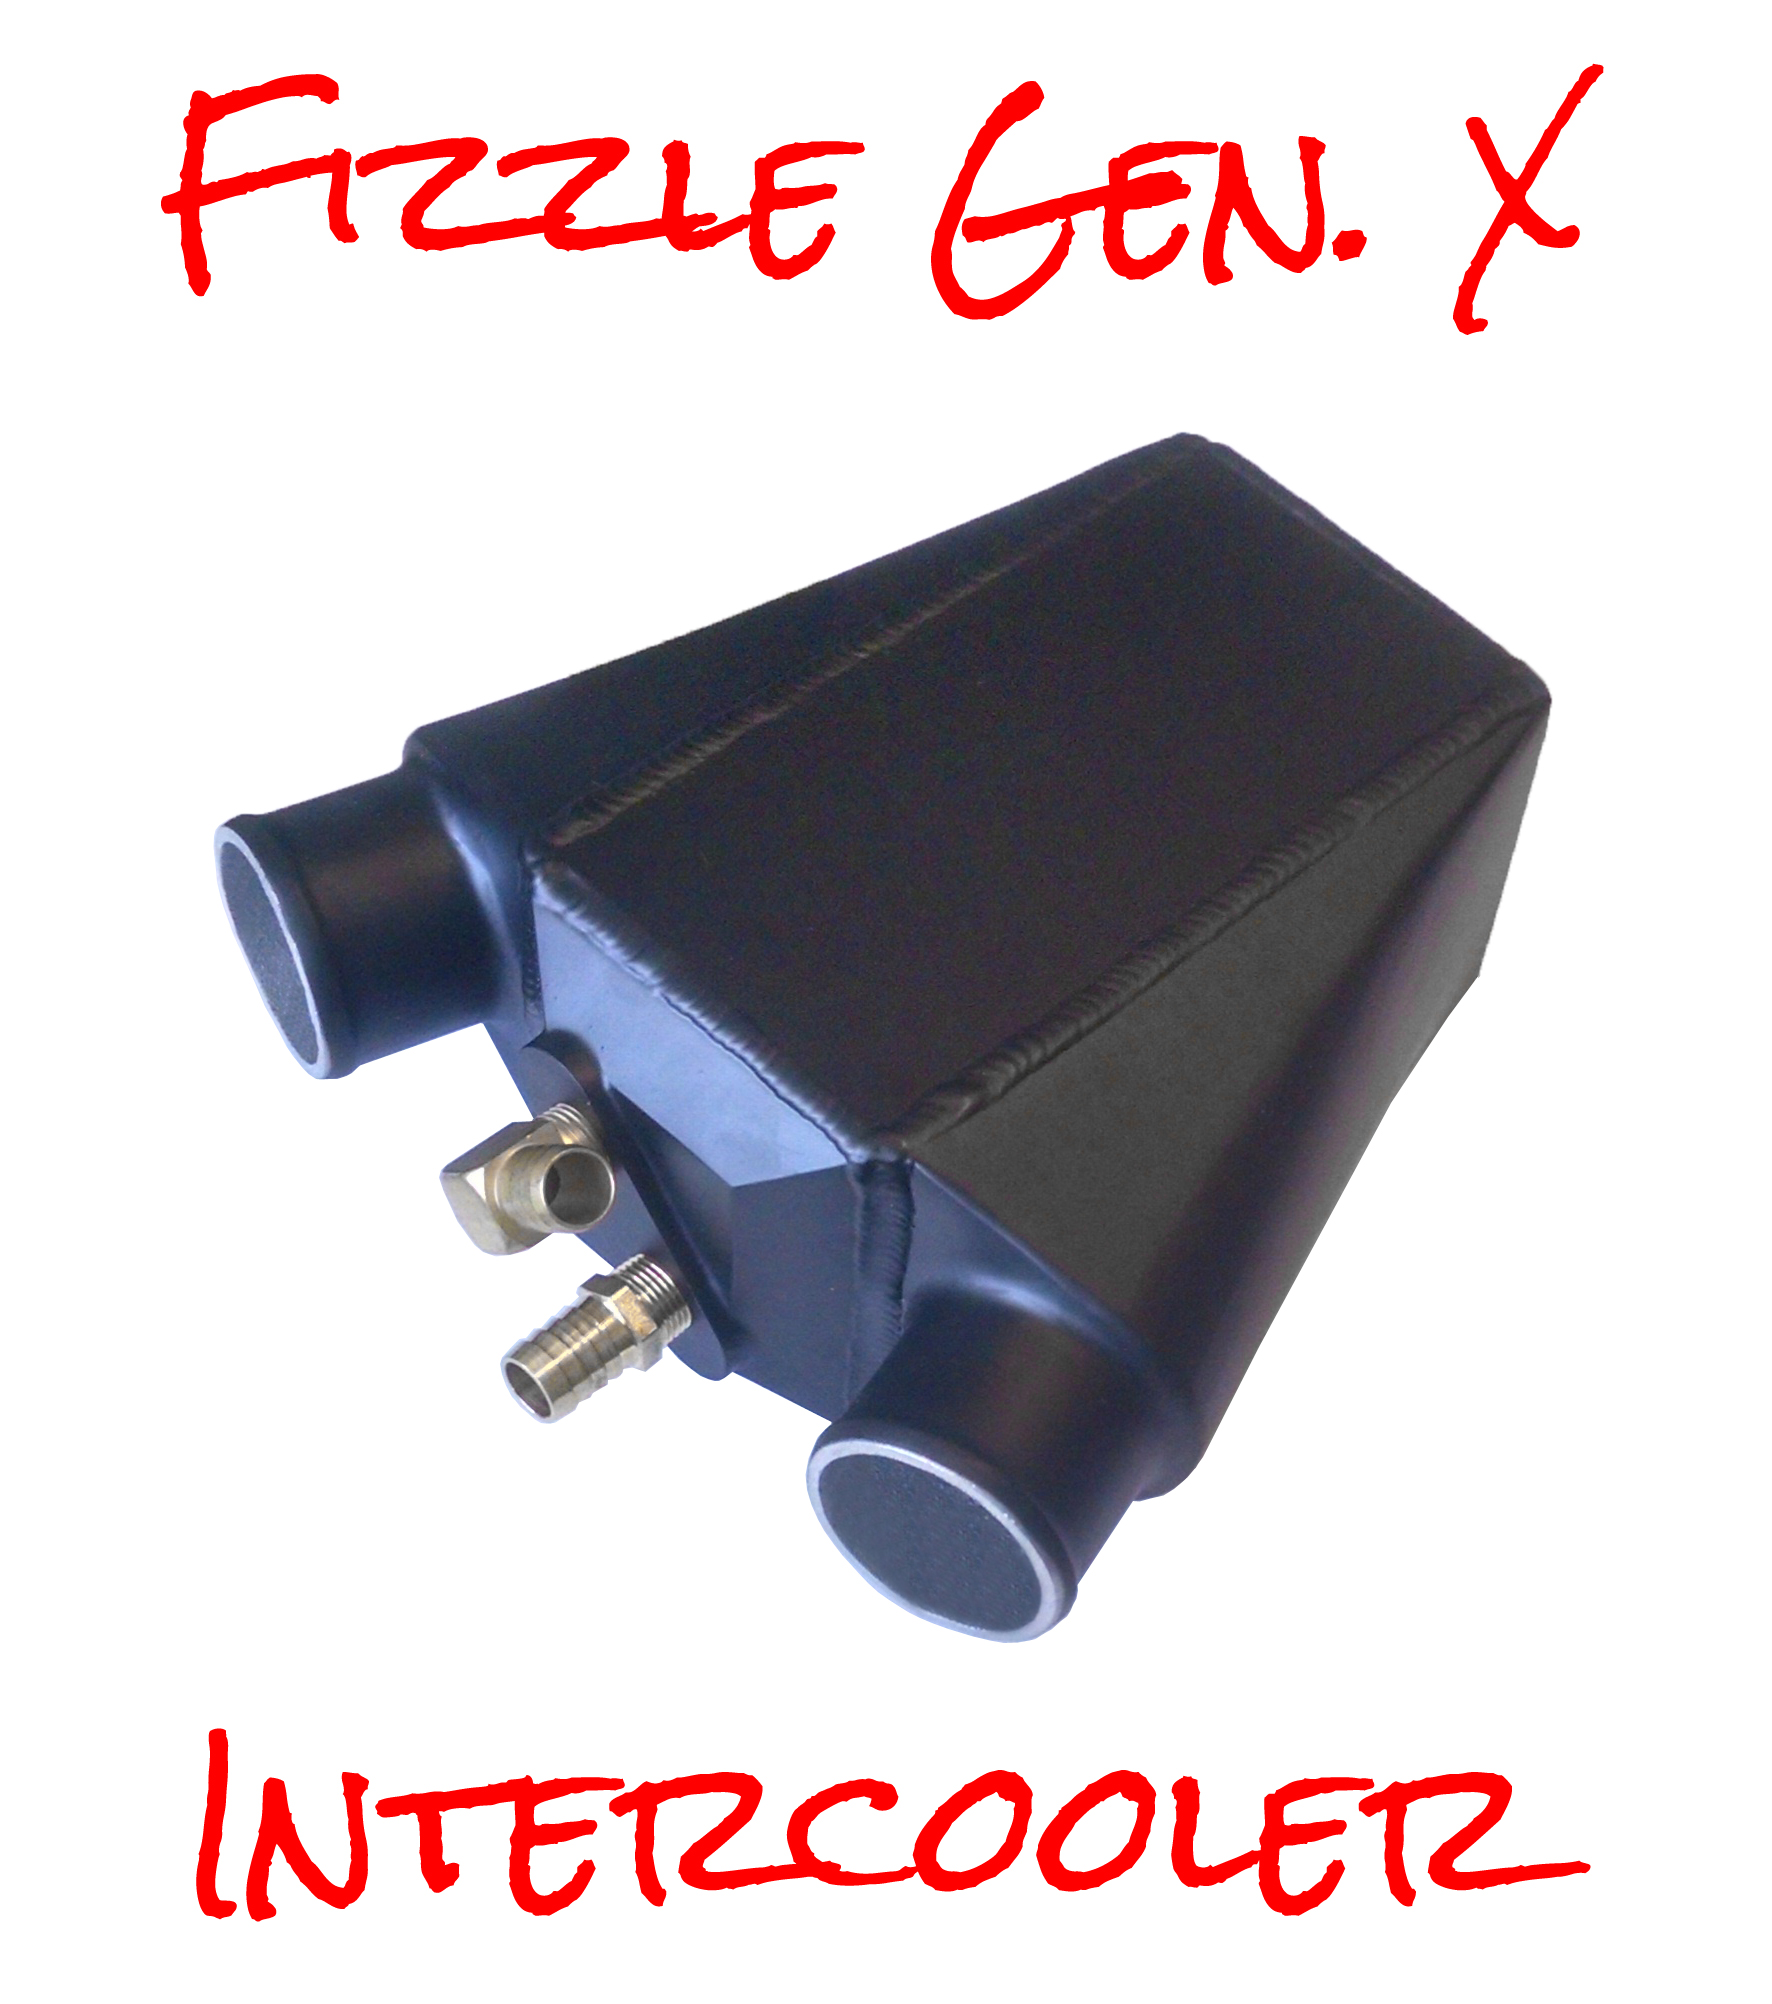 Fizzle Gen X Intercooler for 255/260 Skis